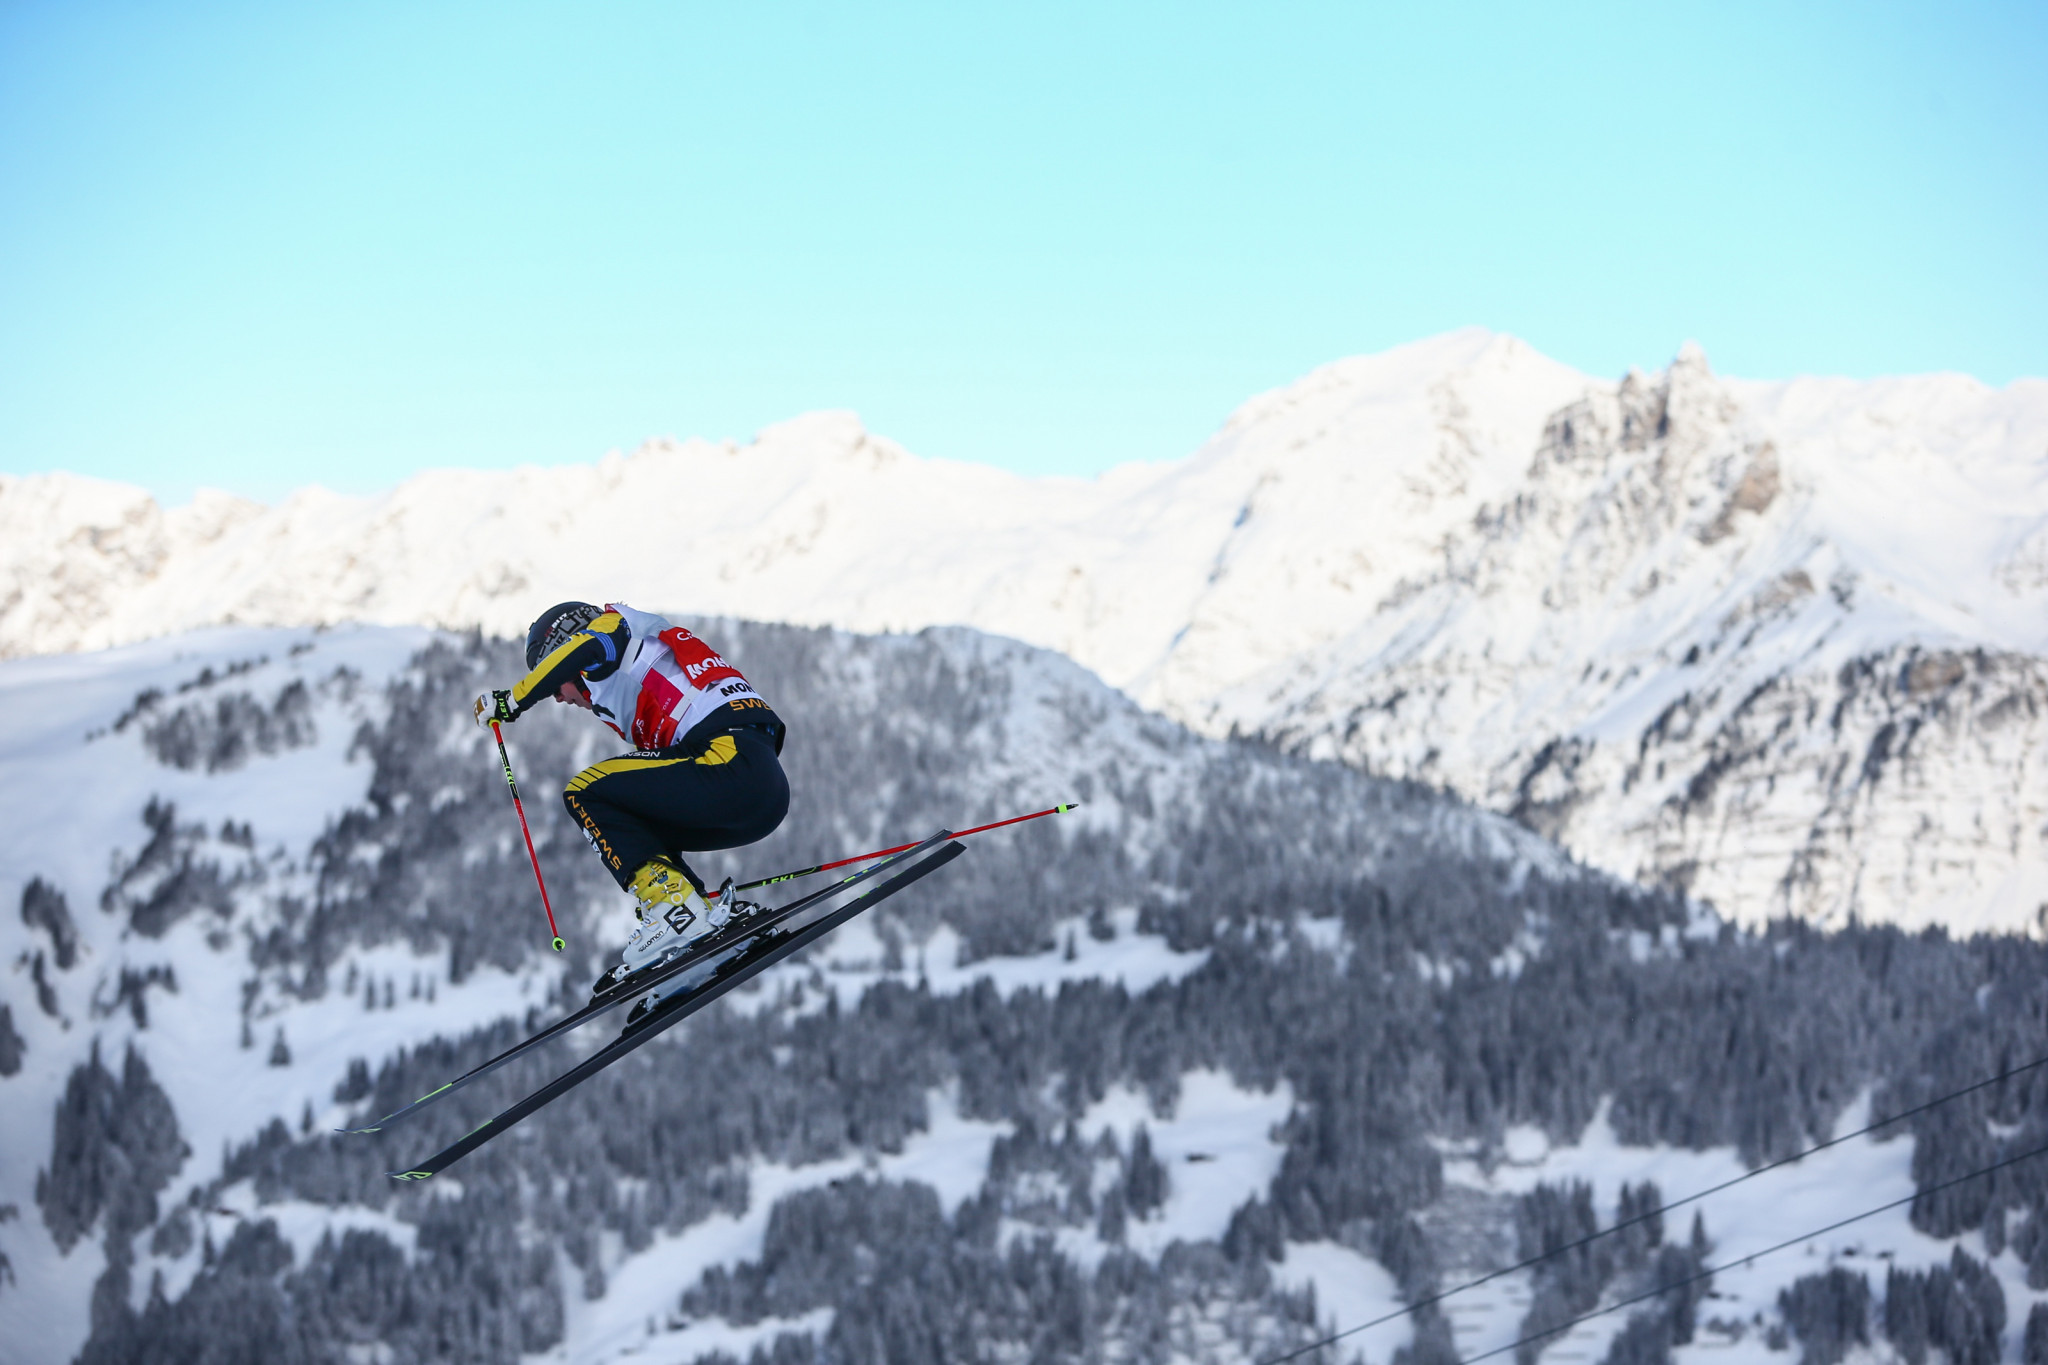 Naeslund to challenge for third FIS Ski Cross World Cup title of the season